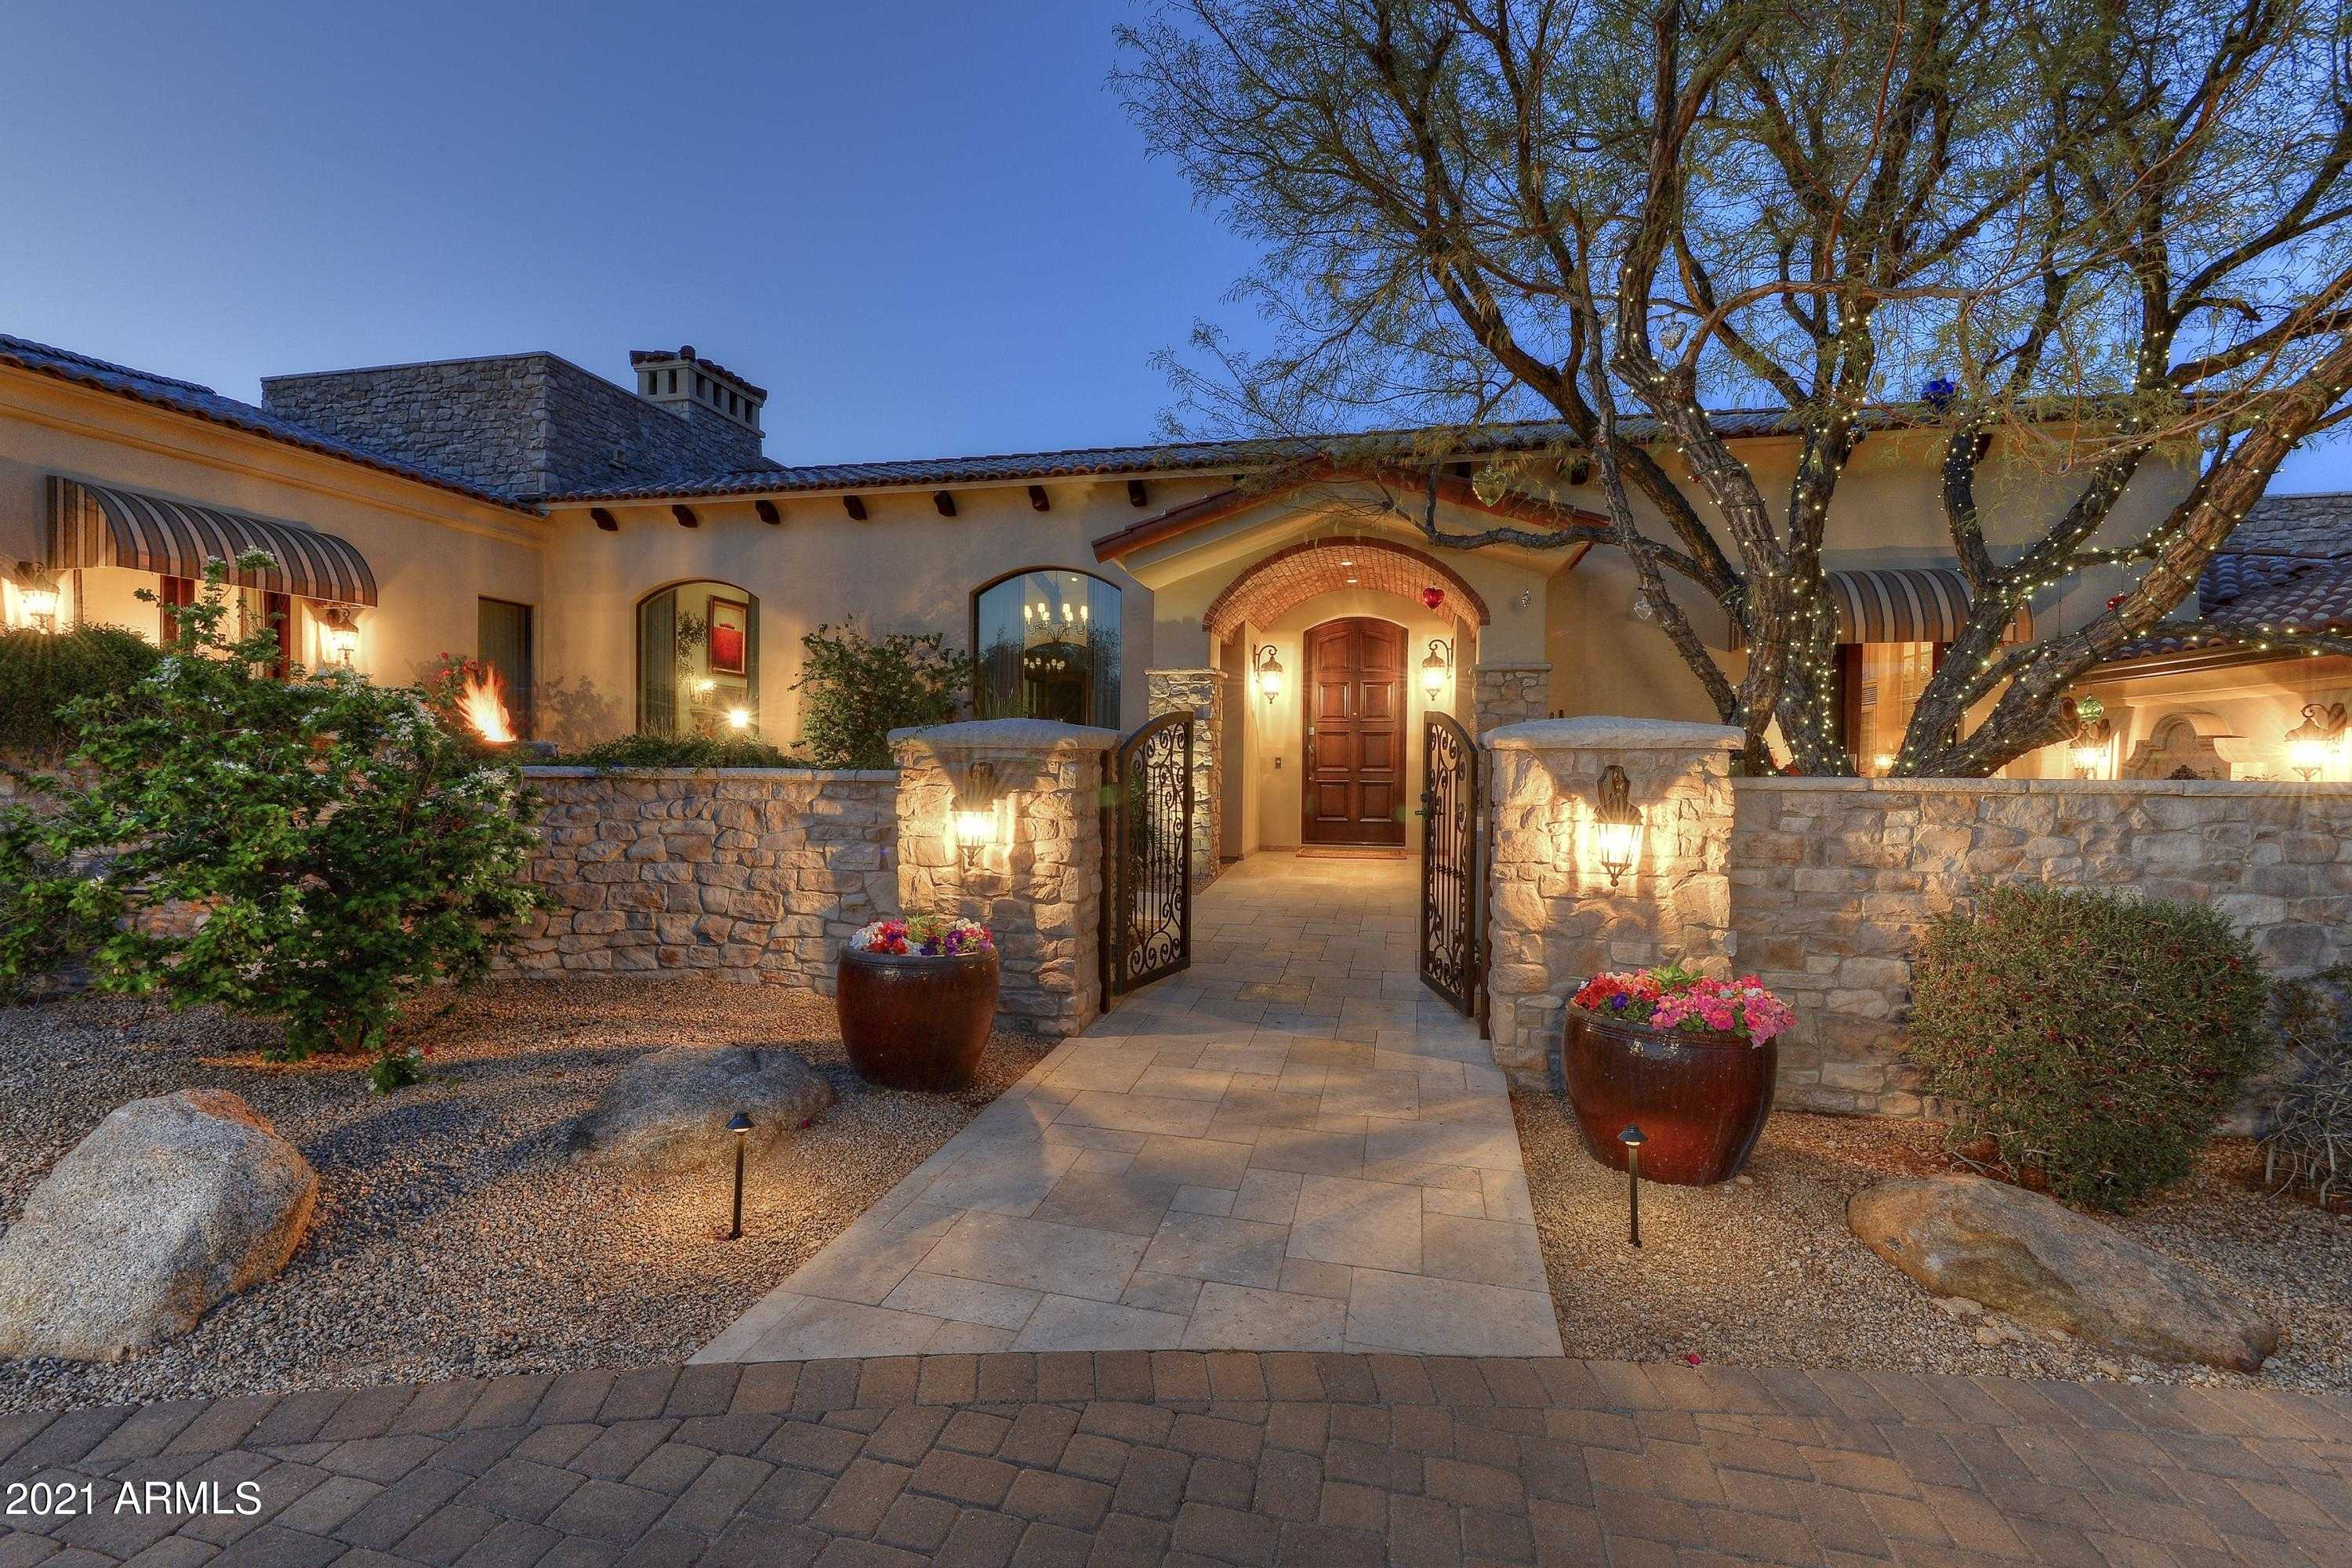 $3,995,000 - 5Br/6Ba - Home for Sale in Paradise Hills Estates, Paradise Valley